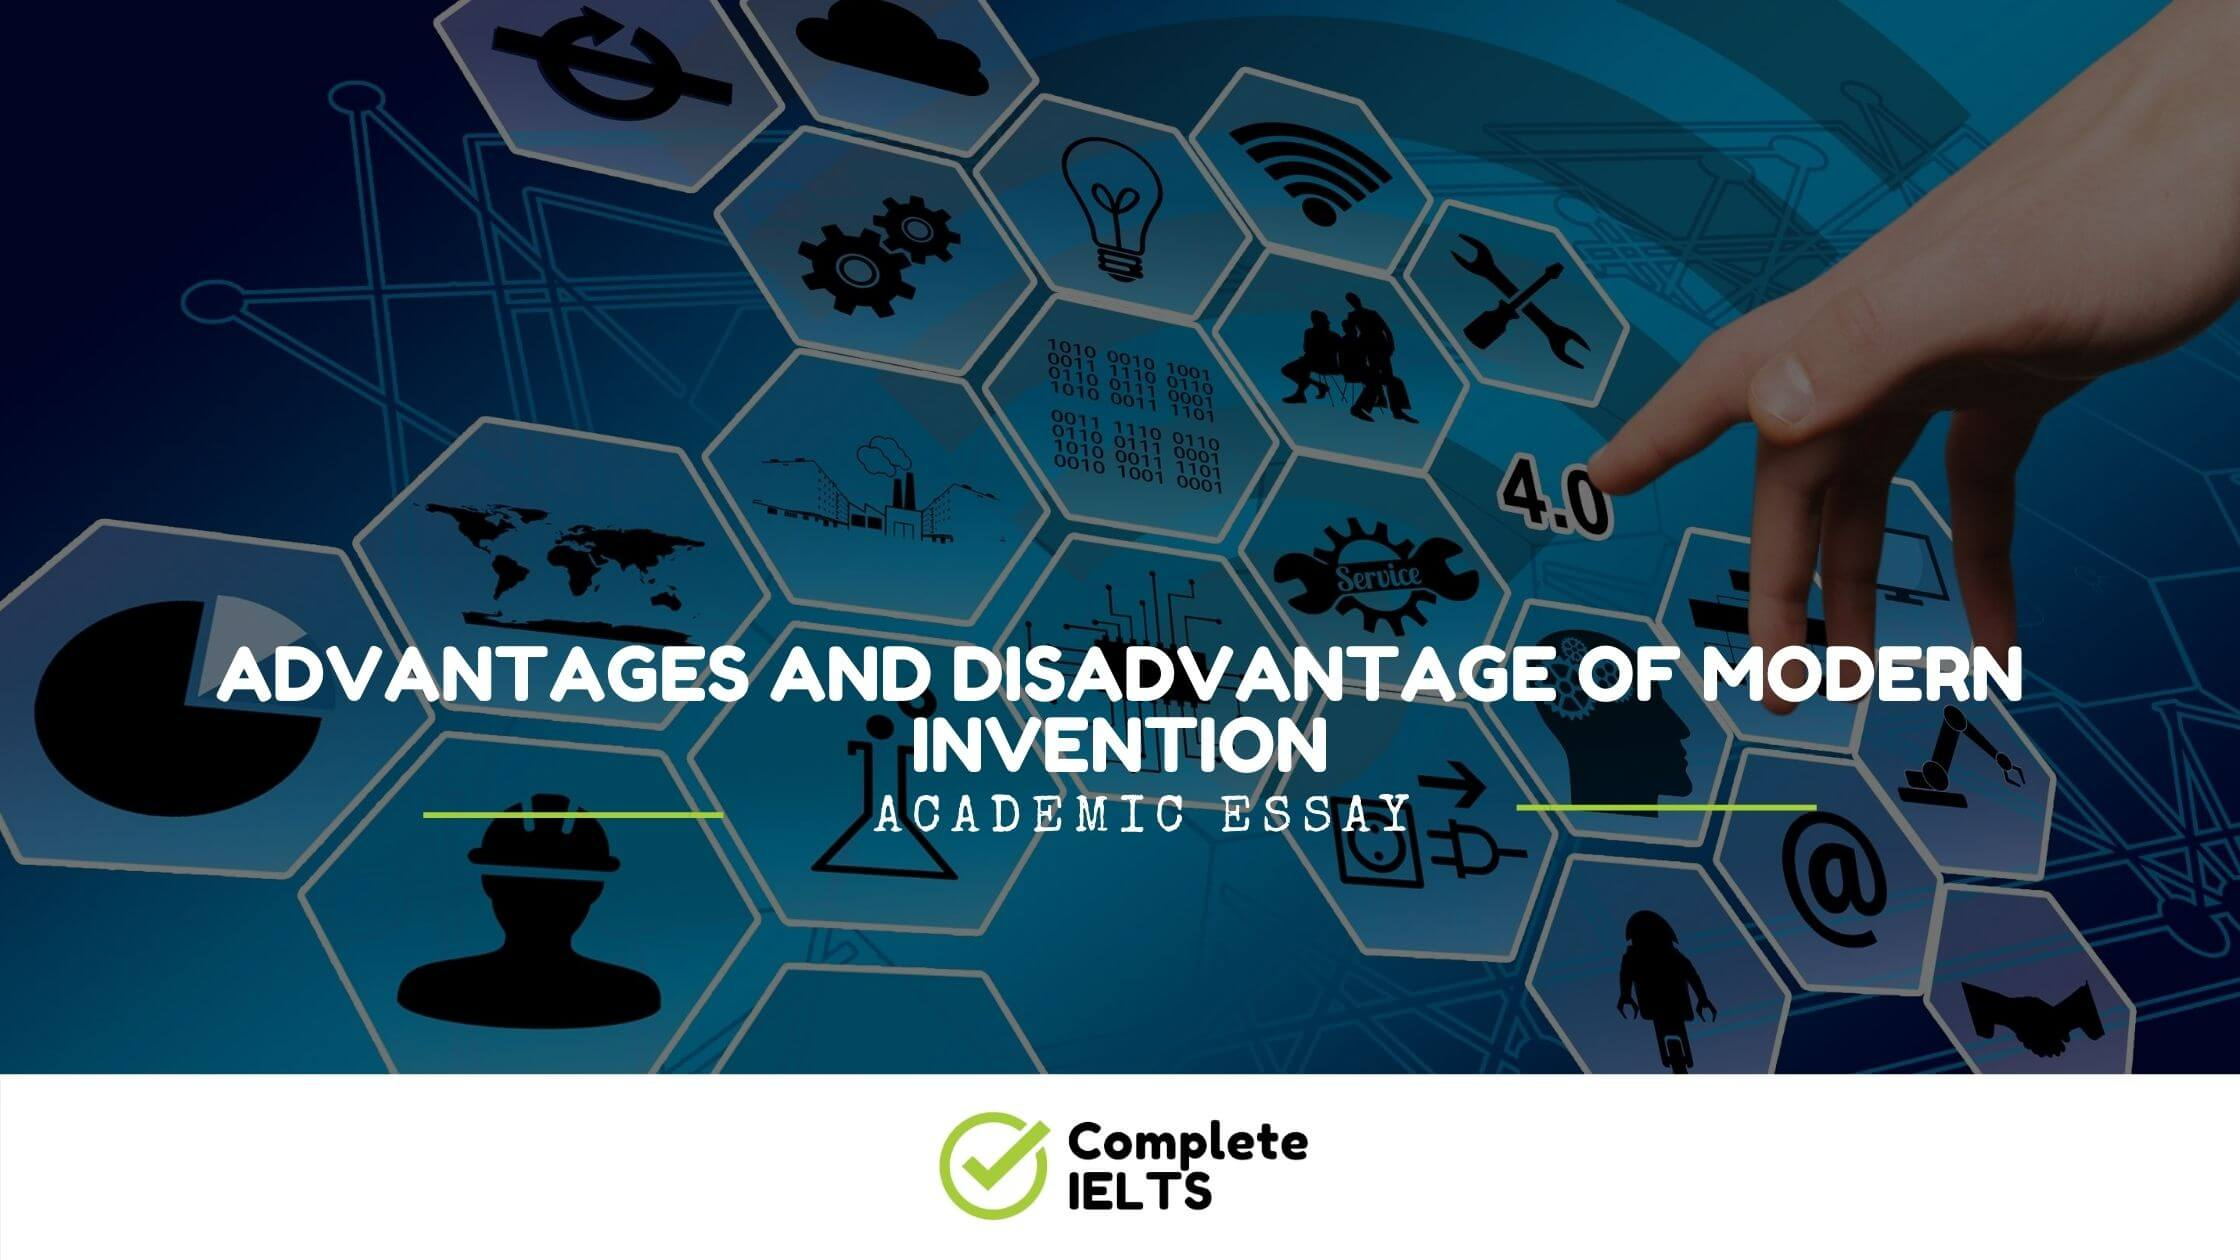 Advantages and disadvantage of modern Invention Essay